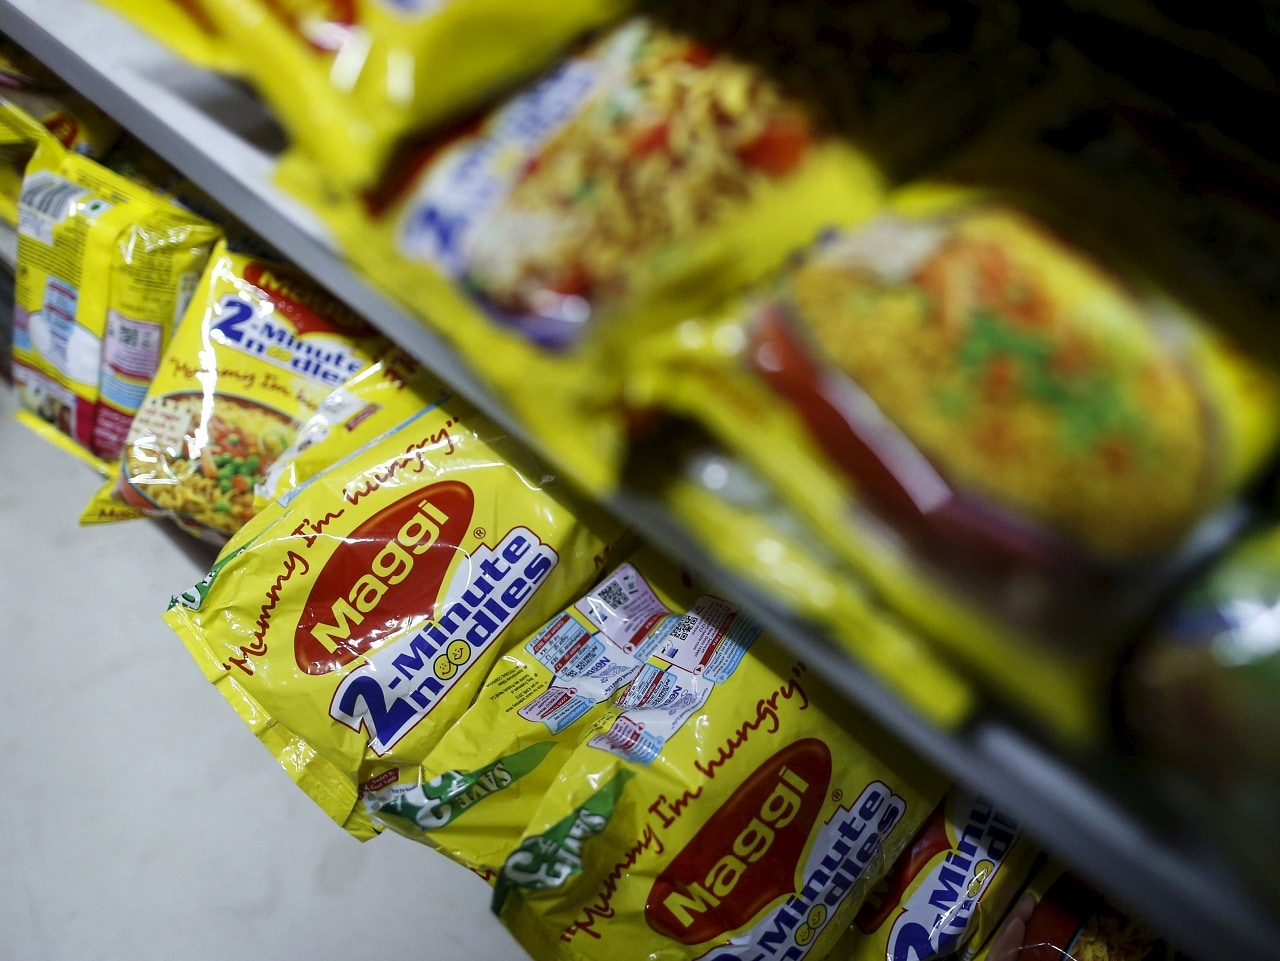 Nestle's share price gained 1.62 percent to hit its 52-week high of Rs 12,799 per share on Thursday. (Image: Reuters)